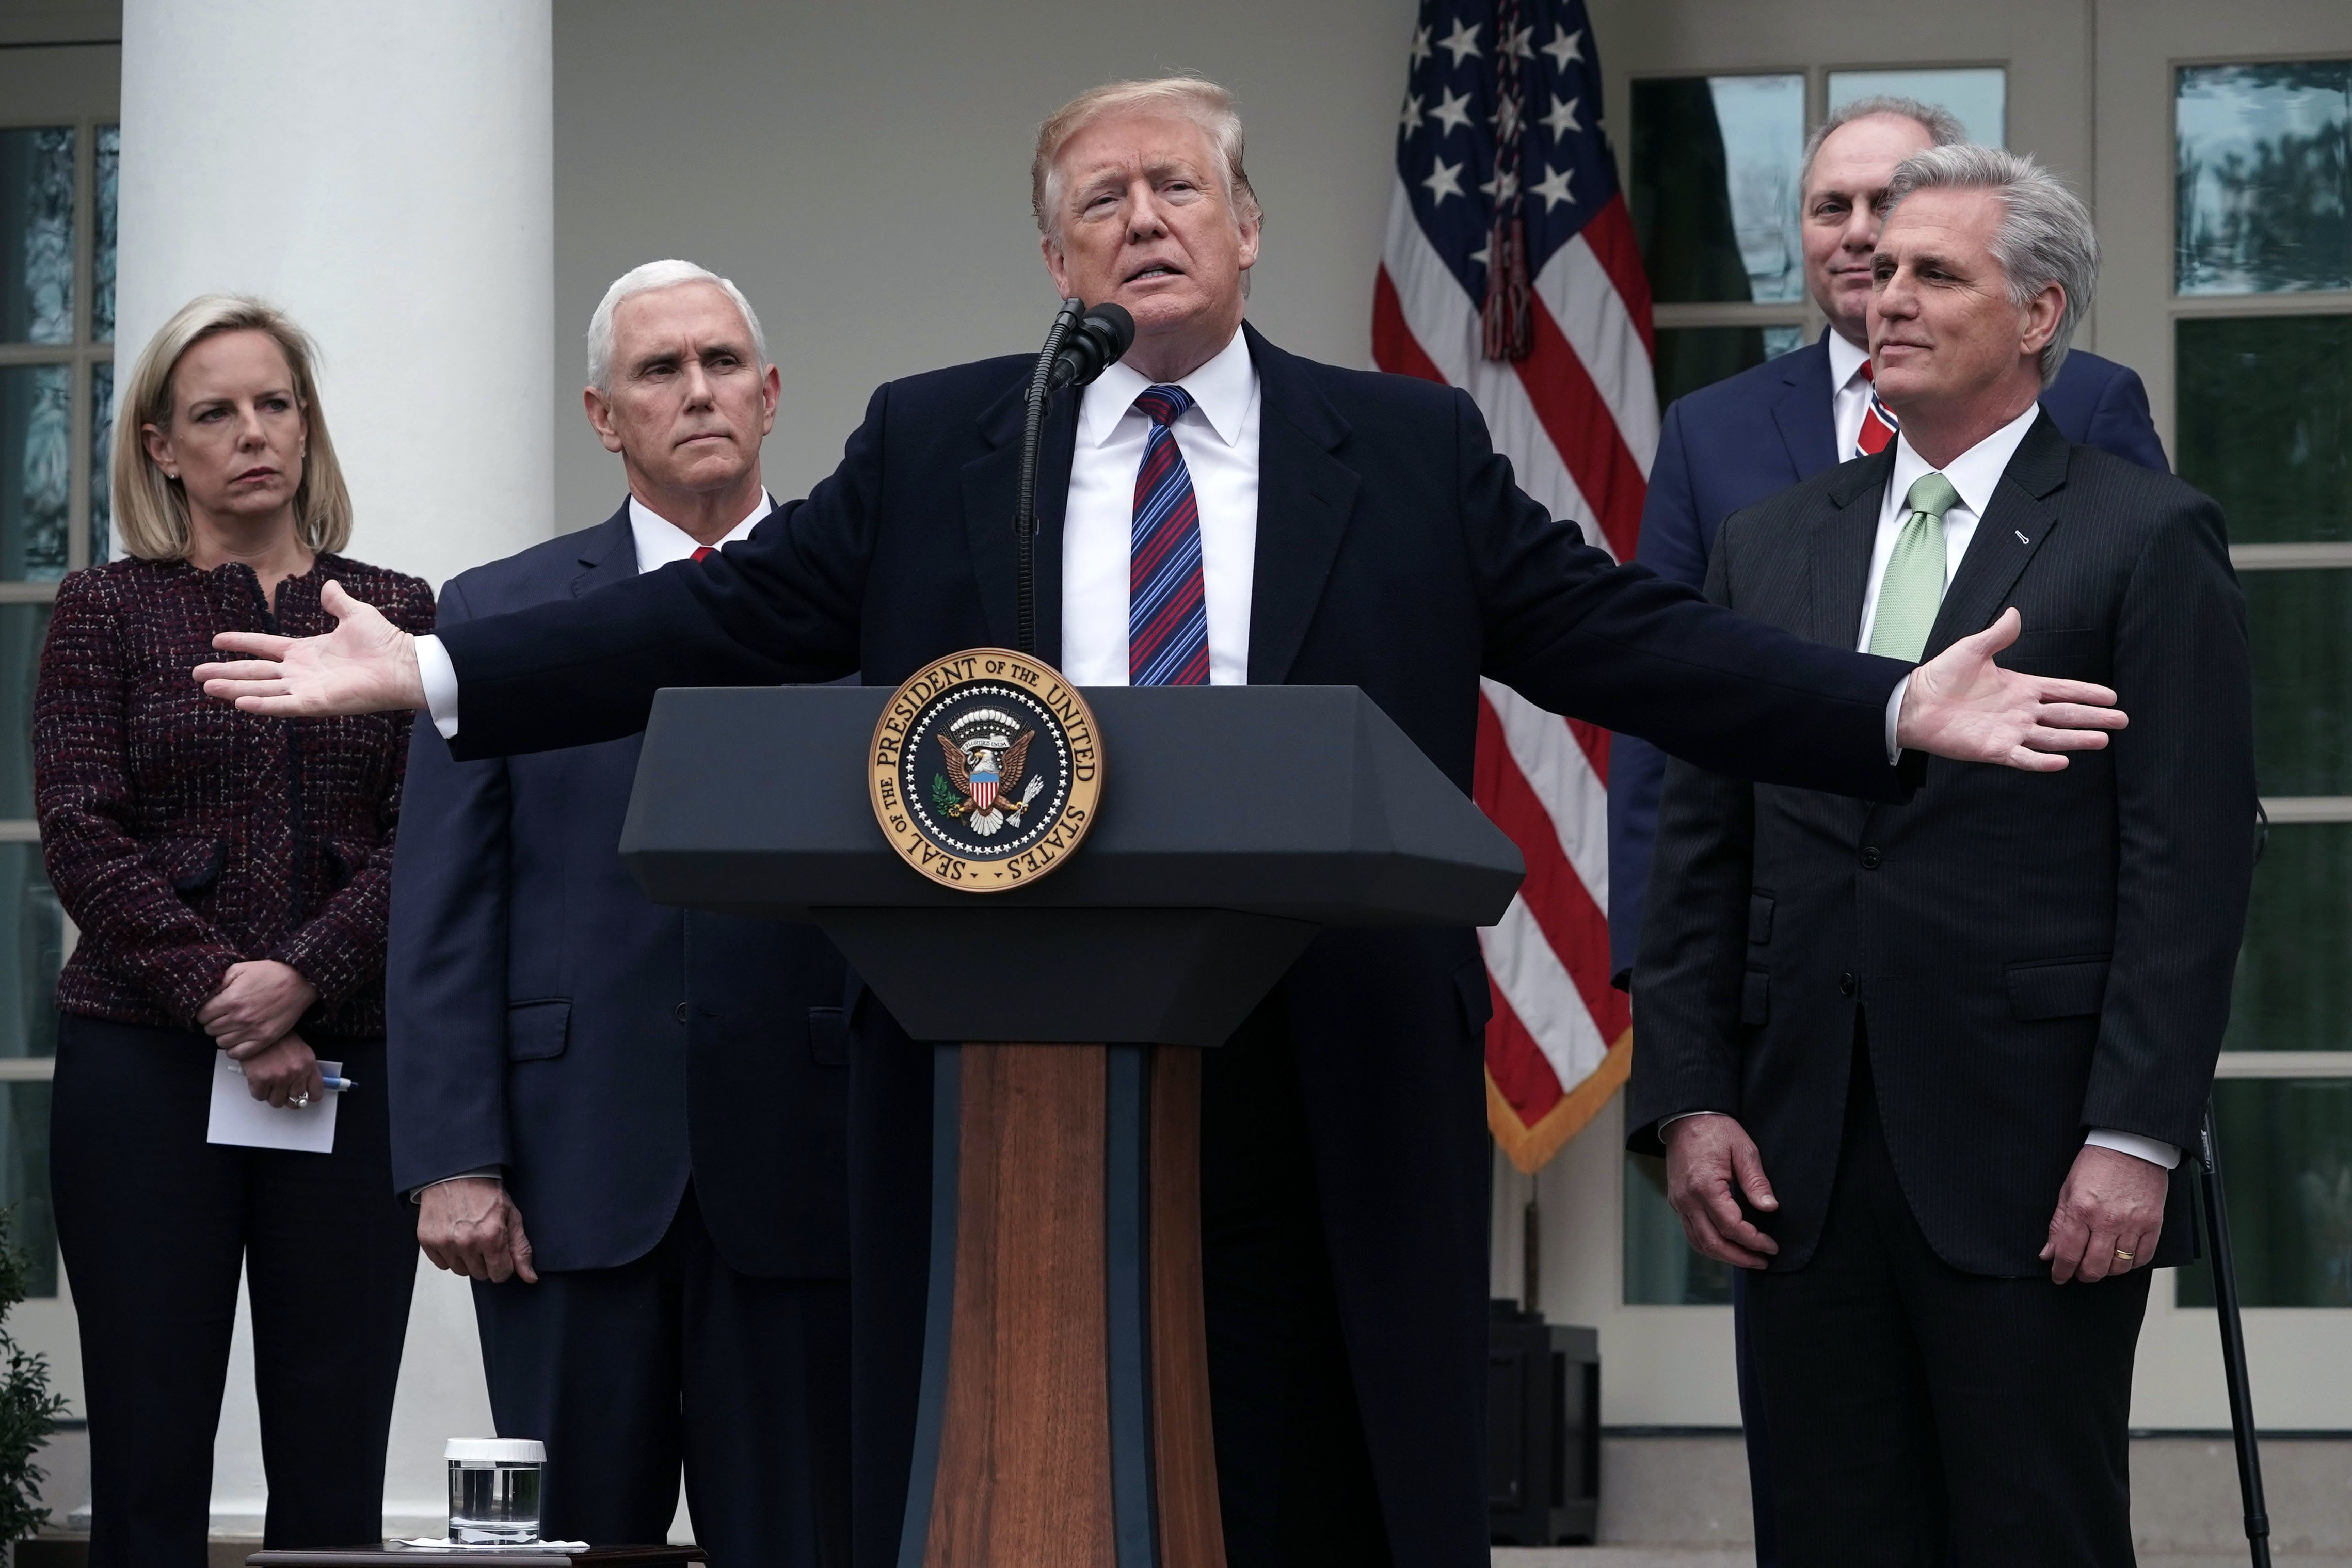 WASHINGTON, DC - JANUARY 04:  U.S. President Donald Trump (3rd L) speaks as Secretary of Homeland Security Kirstjen Nielsen (L), Vice President Mike Pence (2nd L), House Minority Whip Rep. Steve Scalise (R-LA) (4th L) and House Minority Leader Rep. Kevin McCarthy (R-CA) (R) listen in the Rose Garden of the White House on January 4, 2019 in Washington, DC. Trump hosted both Democratic and Republican lawmakers at the White House for the second meeting in three days as the government shutdown heads into its third week.  (Photo by Alex Wong/Getty Images)